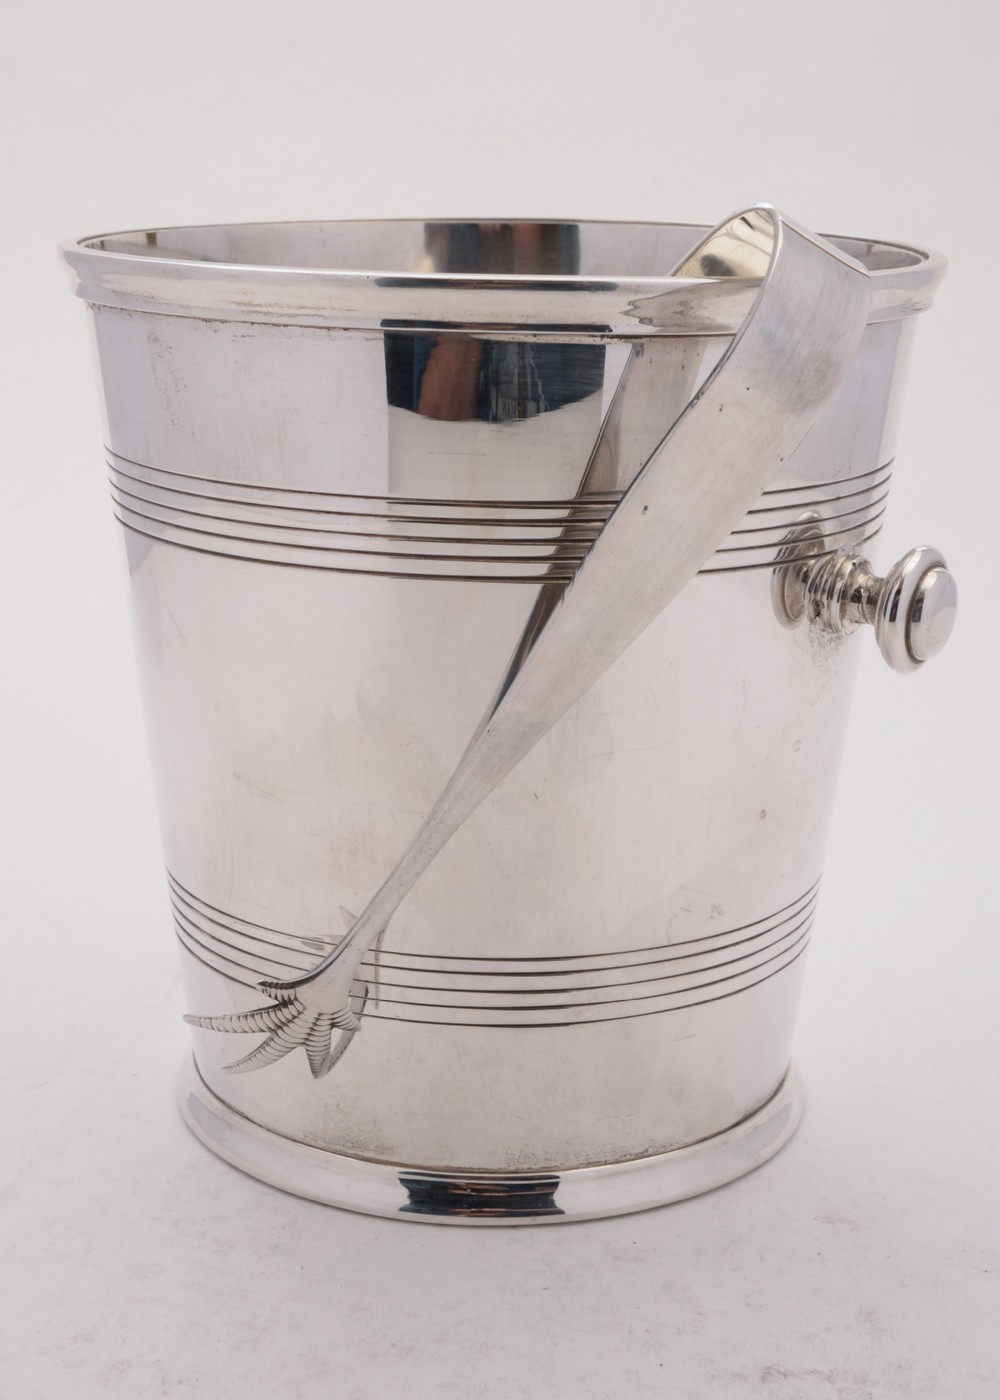 superb art deco silver plated champagneice bucket circa 1930